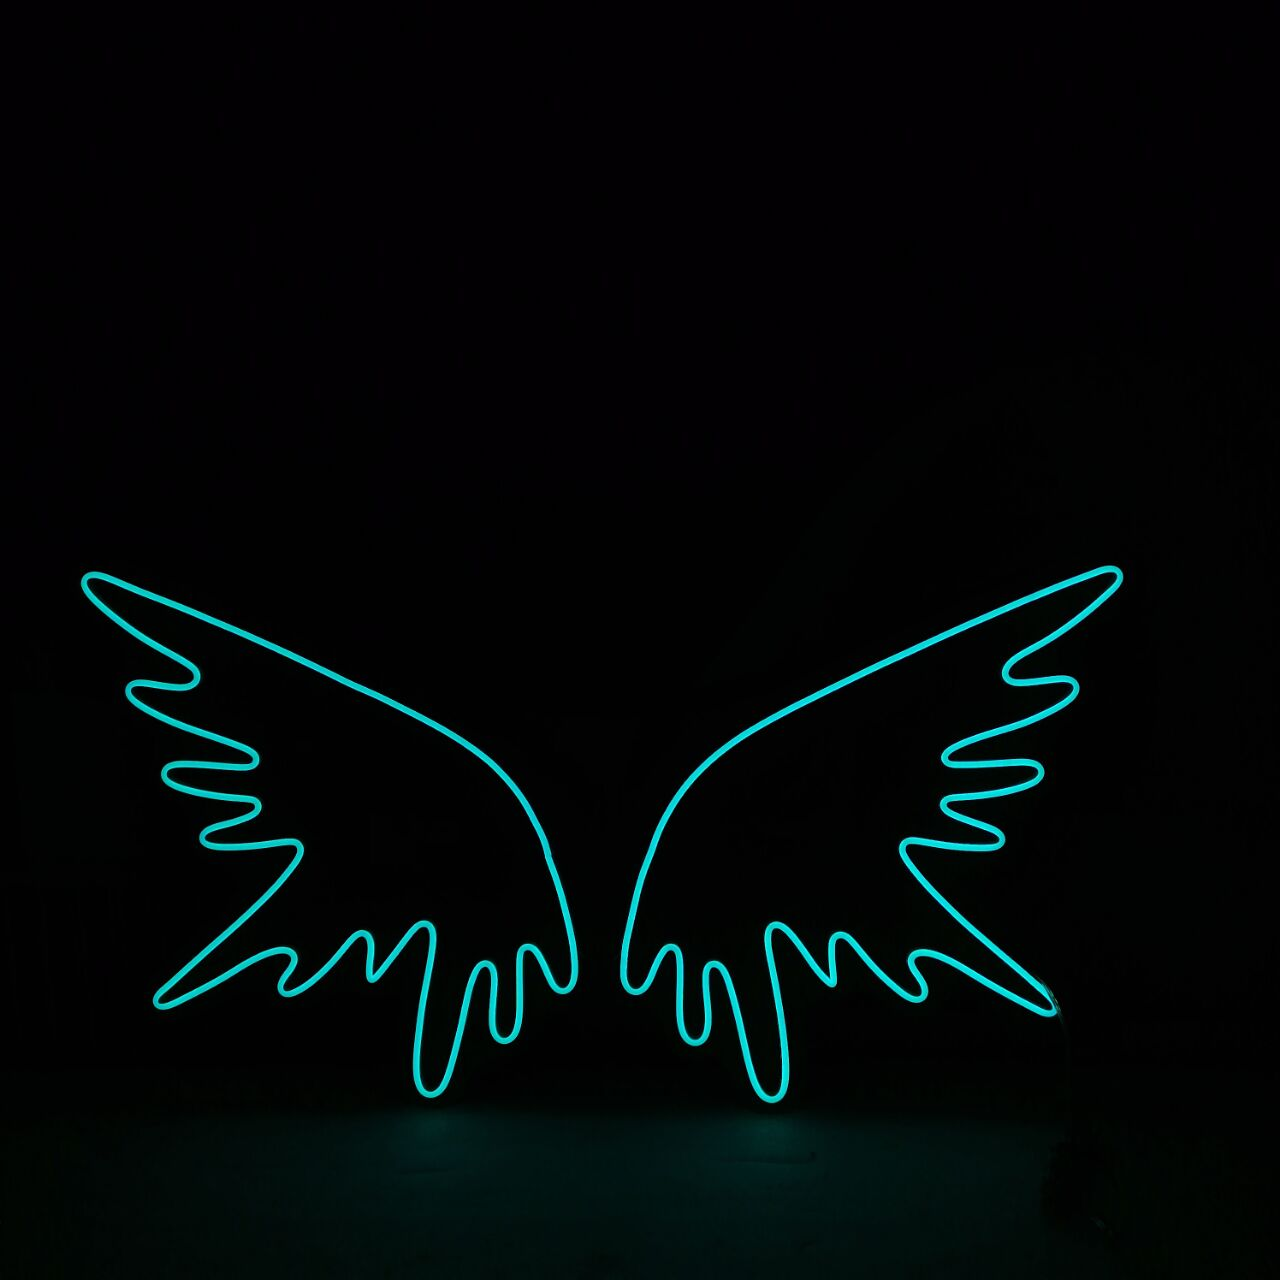 Angel Wings Custom Led Neon Sign Neon Wall Decor  For Indoor Wedding Party Decor Home Bar Cafe Decoration Gift enlarge